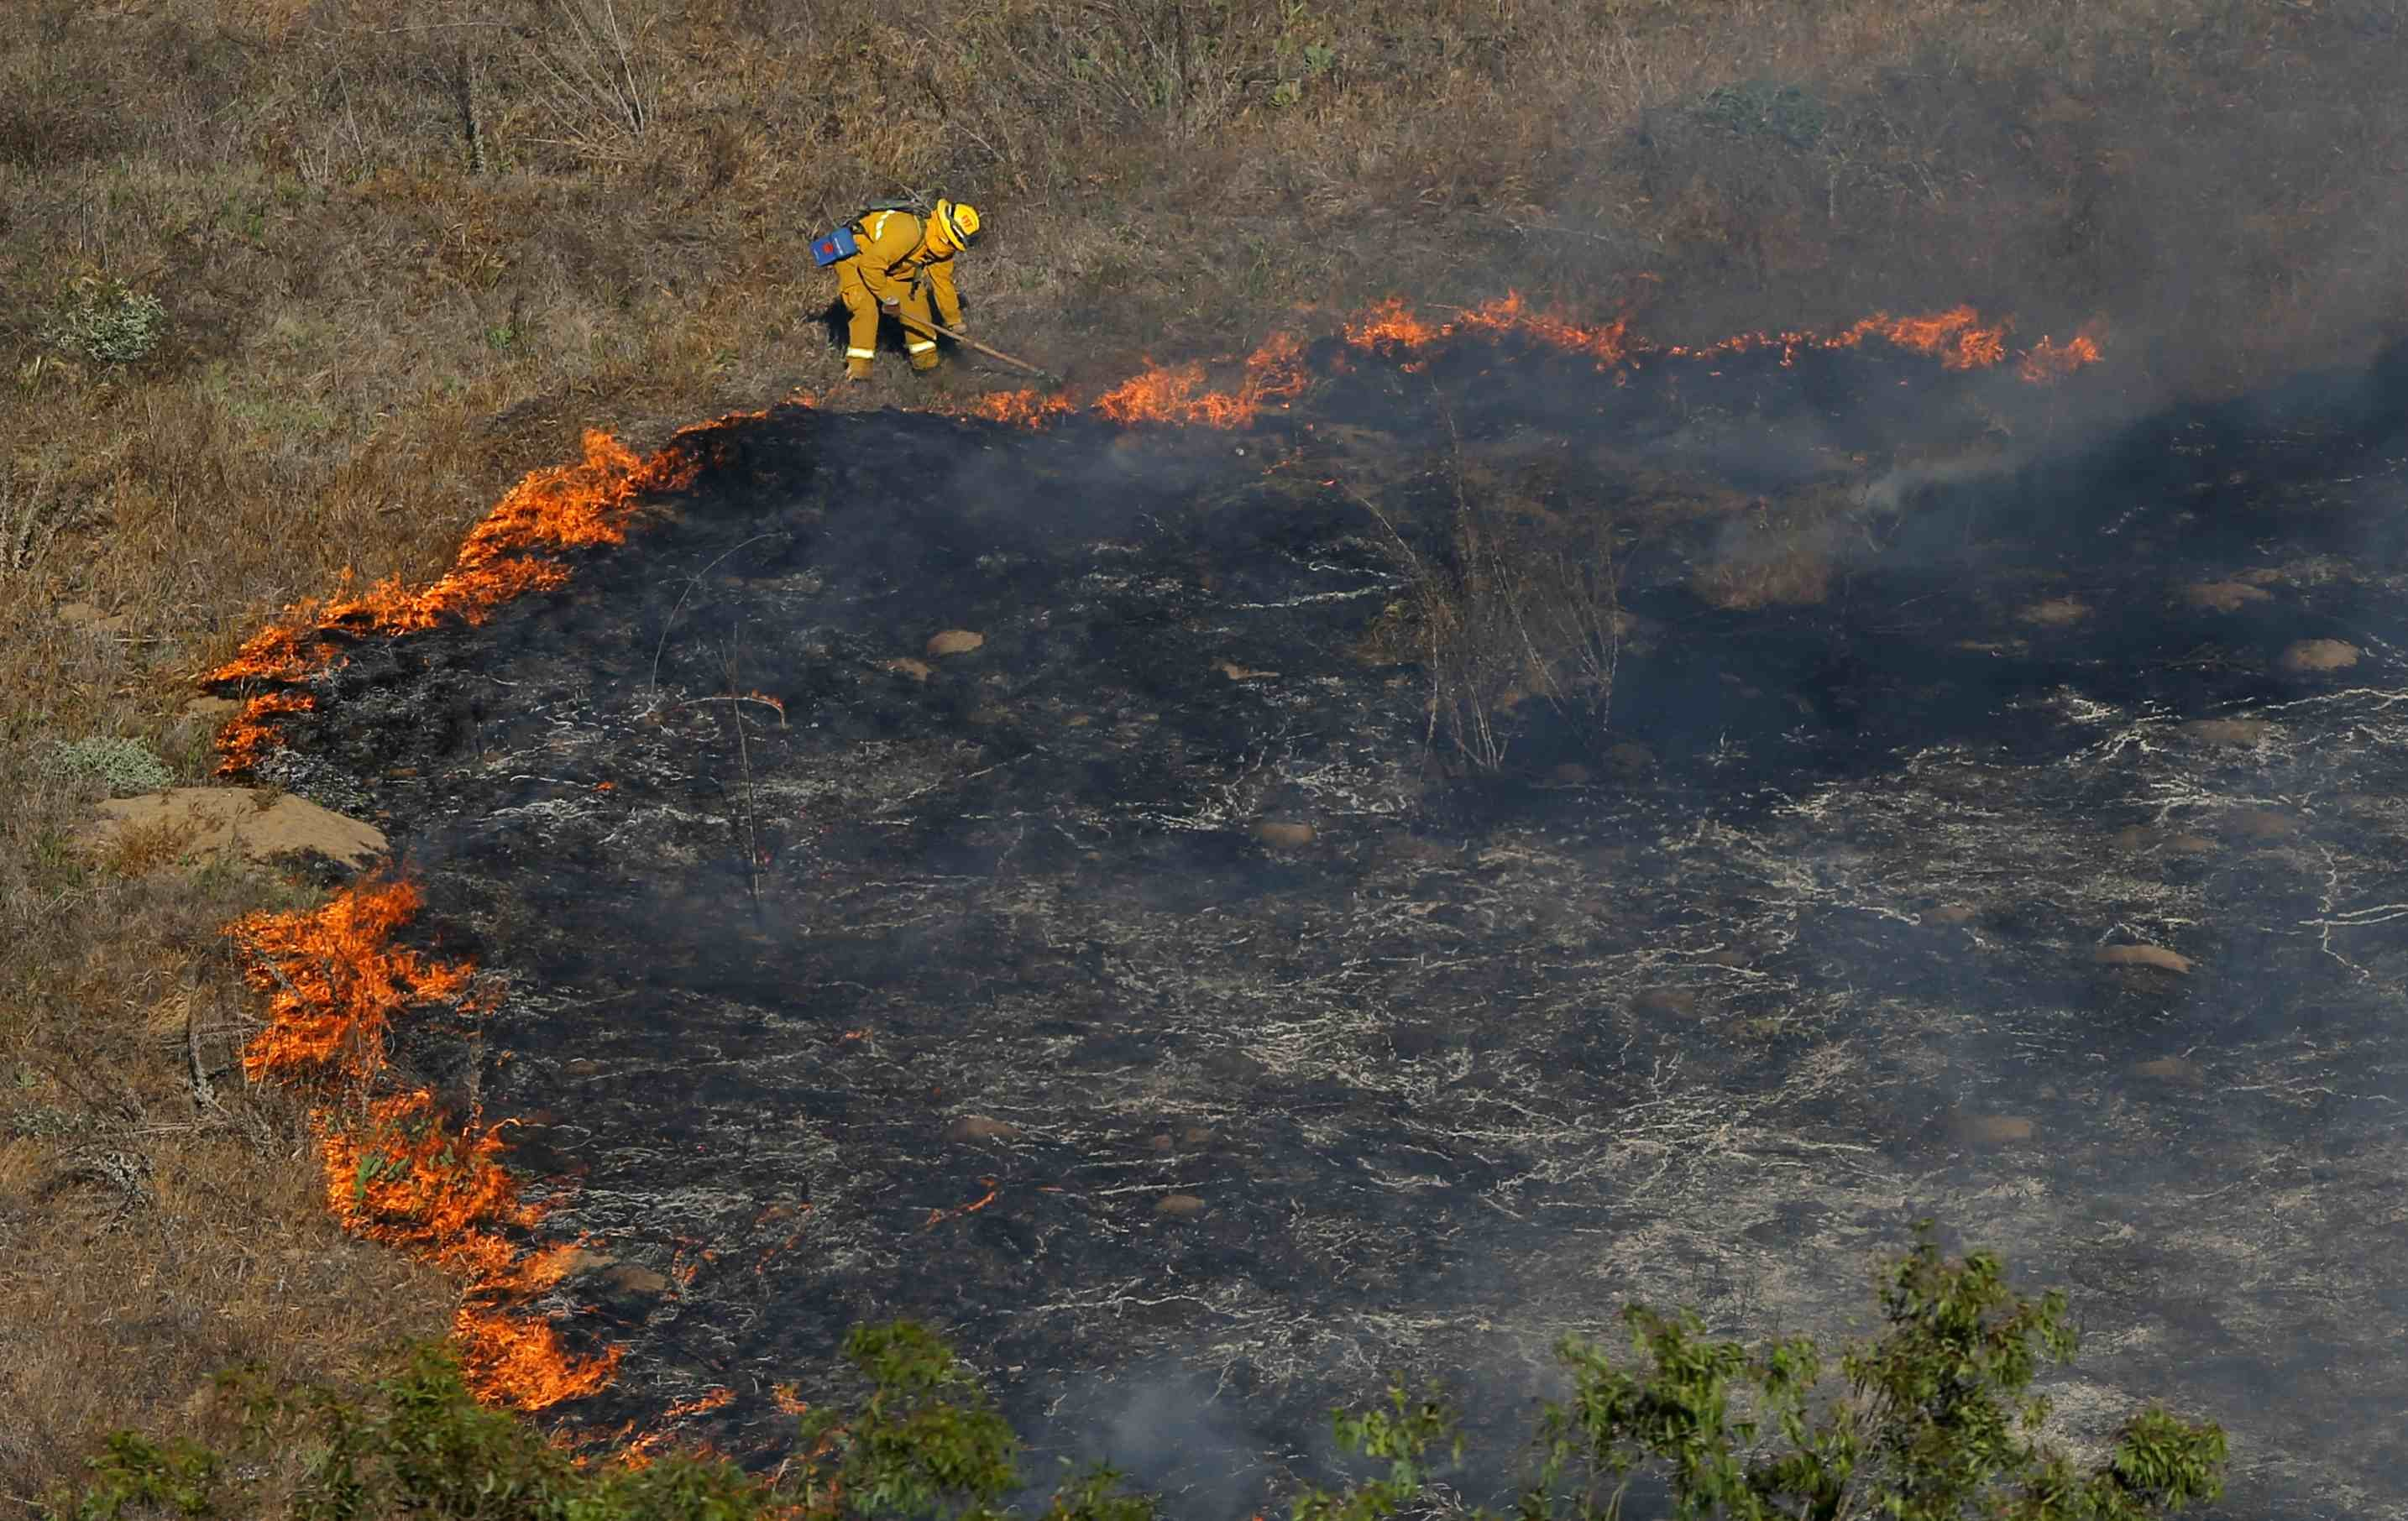 A firefighter works in a canyon to help extinguish the fire north of San Diego on May 13, 2014.